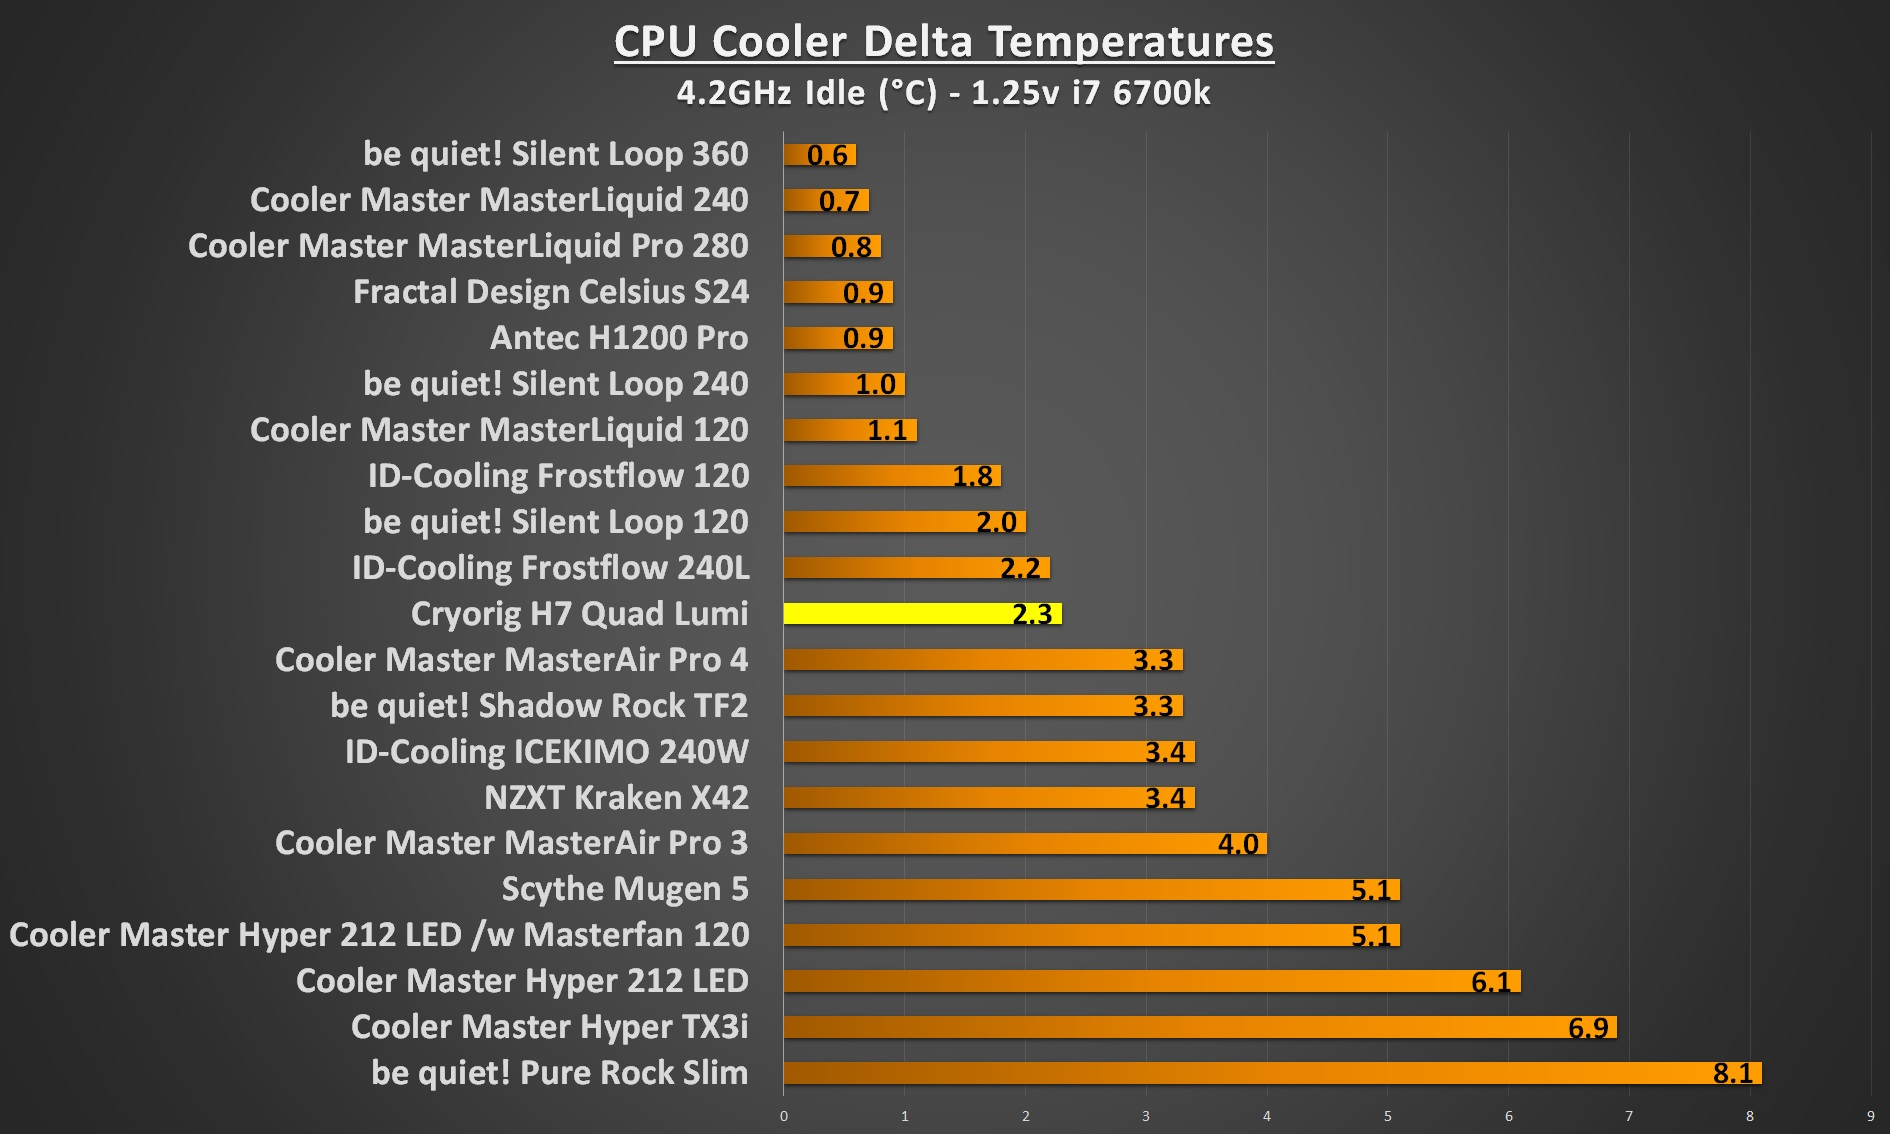 Cryorig H7 Quad Lumi 4.2Ghz idle